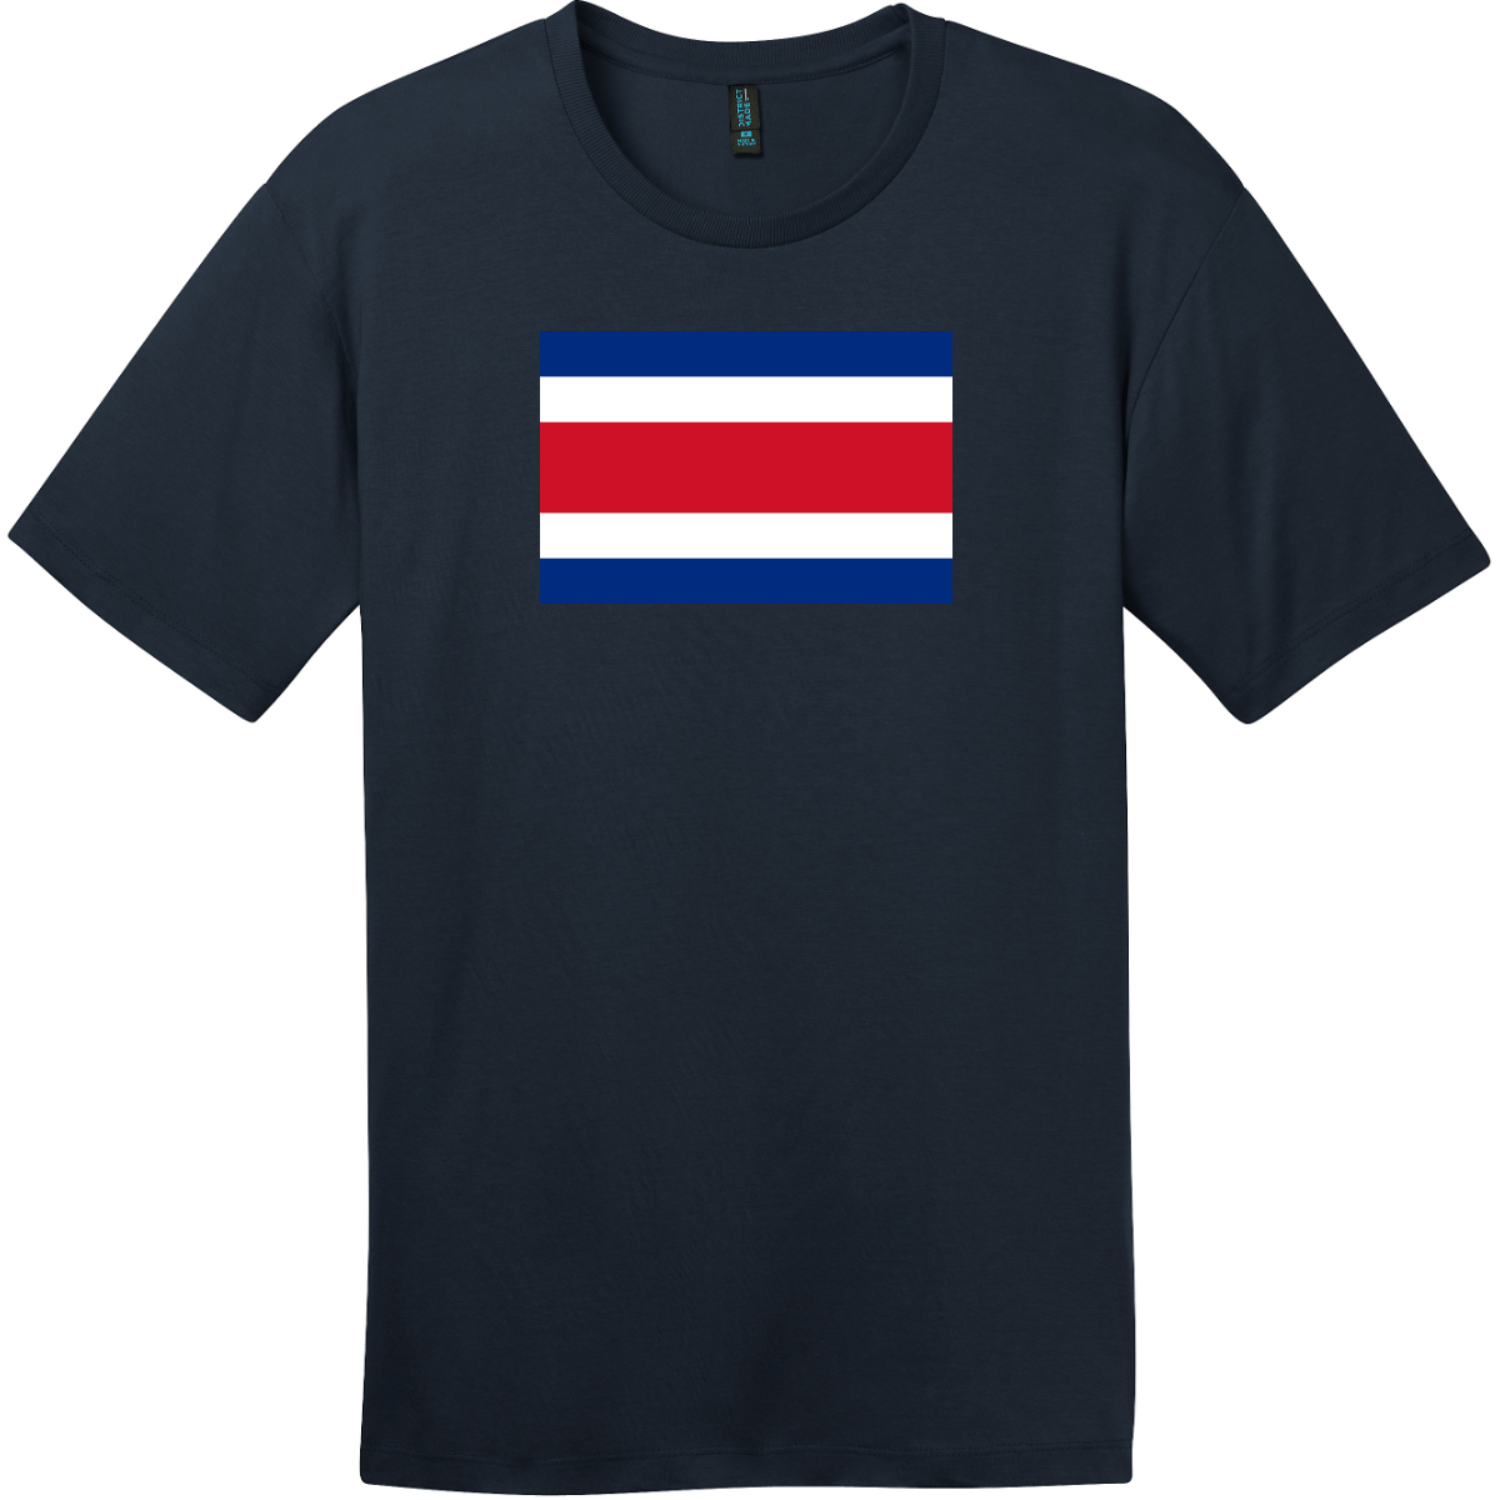 Costa Rica Flag T-Shirt New Navy District Perfect Weight Tee DT104